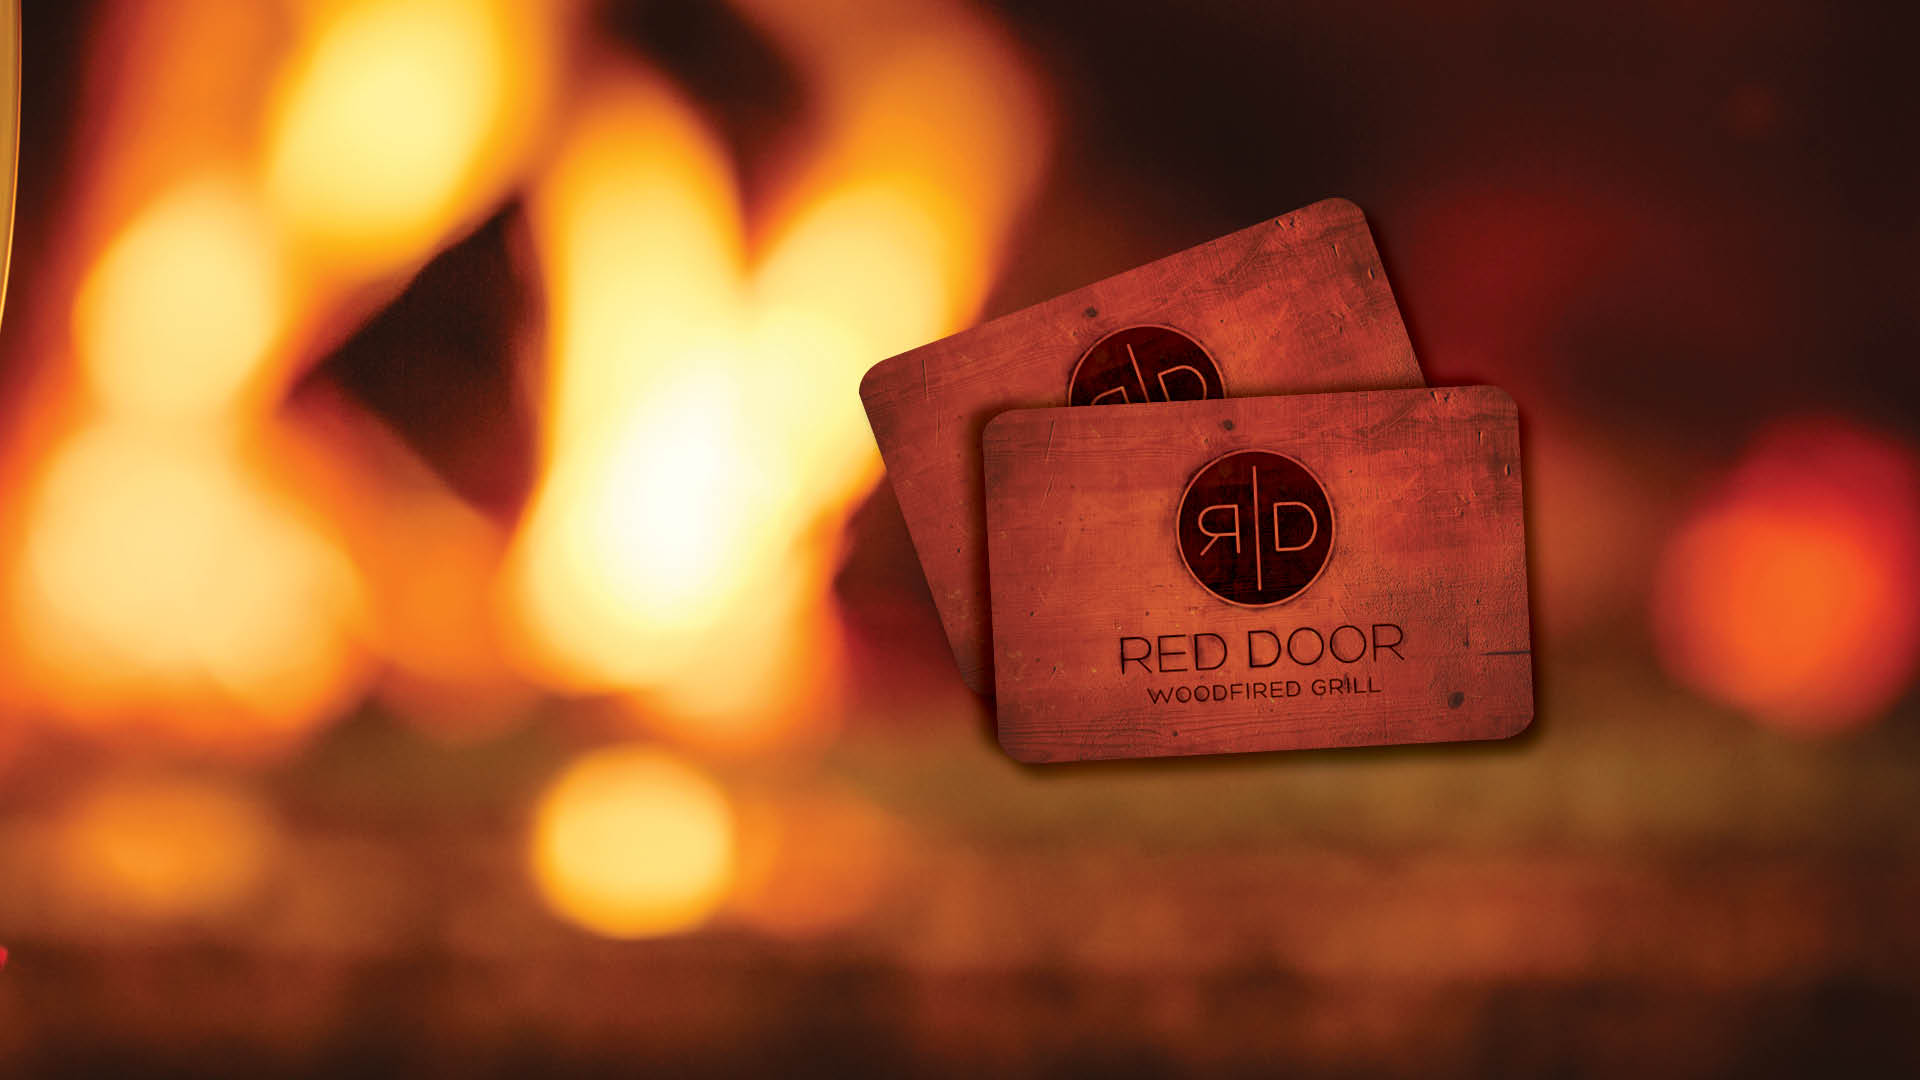 Leave Your Troubles At The Door Signd Door Grill Welcome To Red